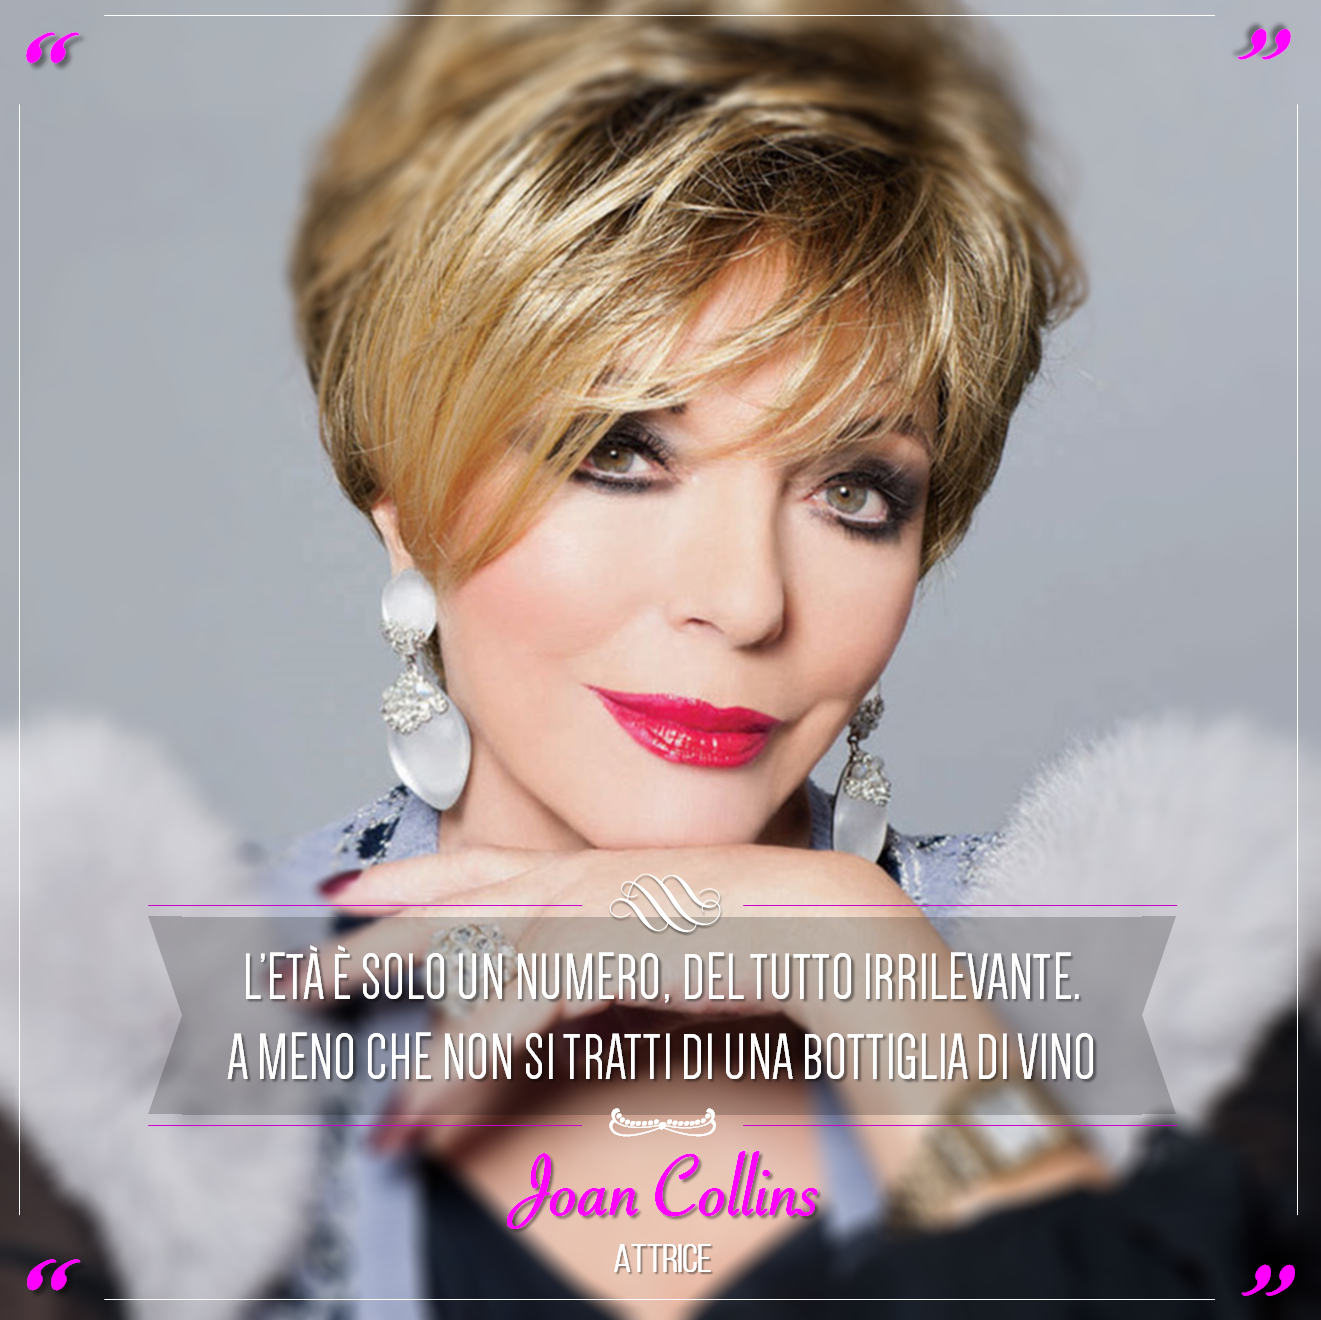 """Age is just an irrelevant number unless it is a bottle of wine.""Joan Collins is an English actress, author and columnist. @marchesimazzei #marchesimazzei #fonterutoli #wine #tuscany #winequotes"